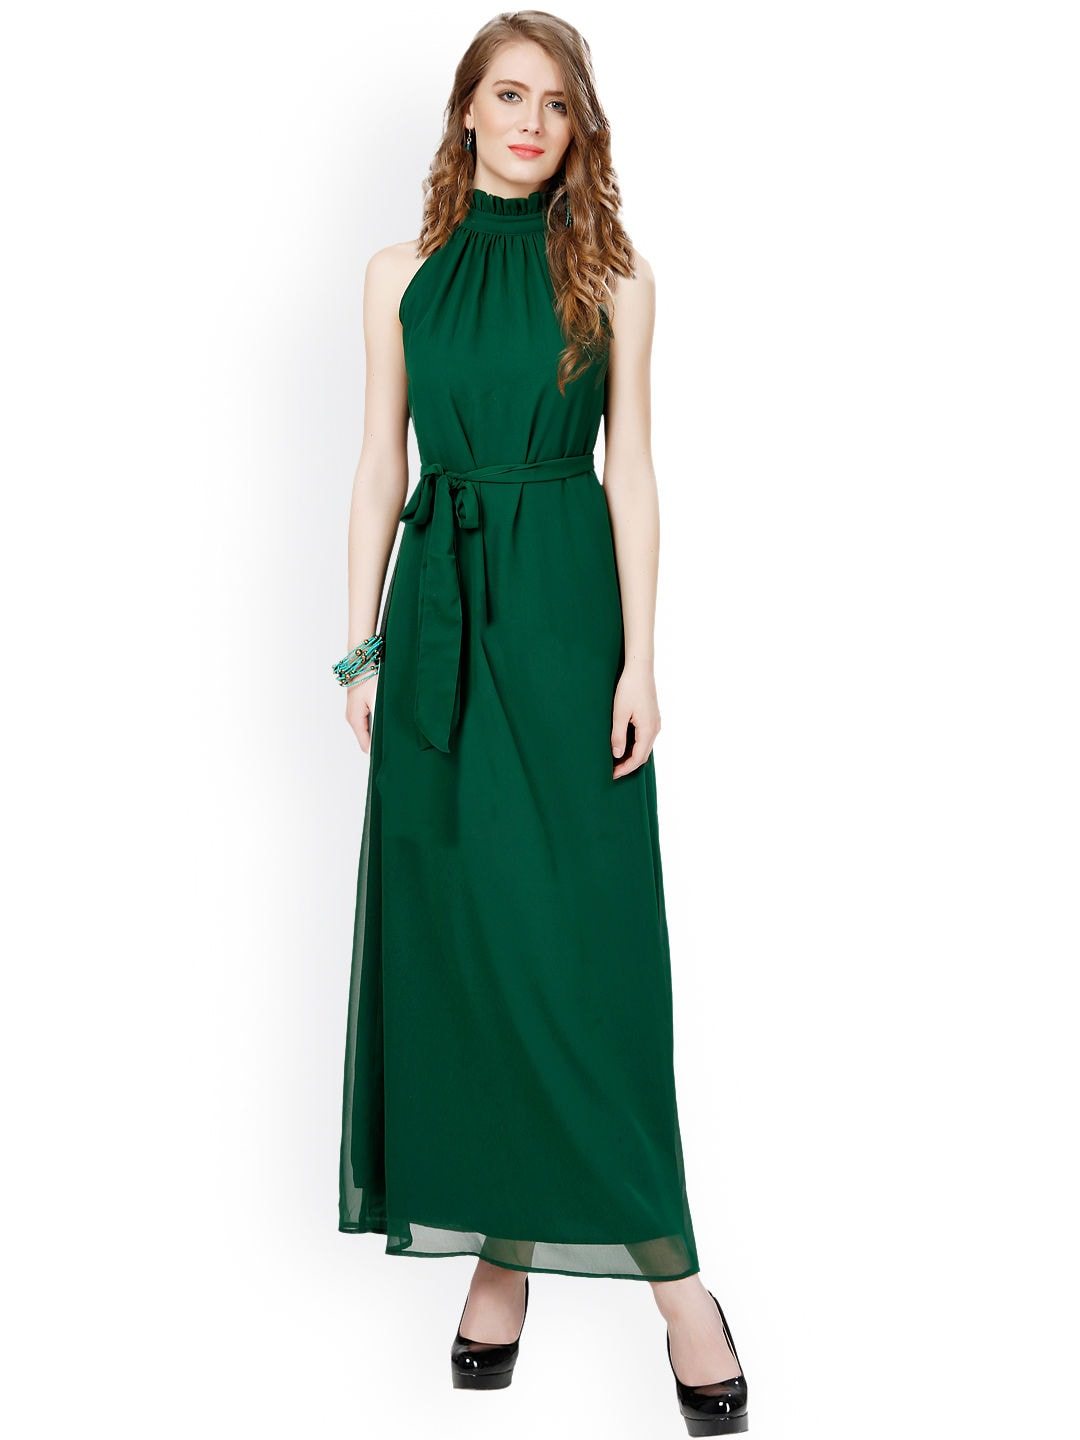 3145e9a7ae1 Eavan Dress - Buy Eavan Dresses